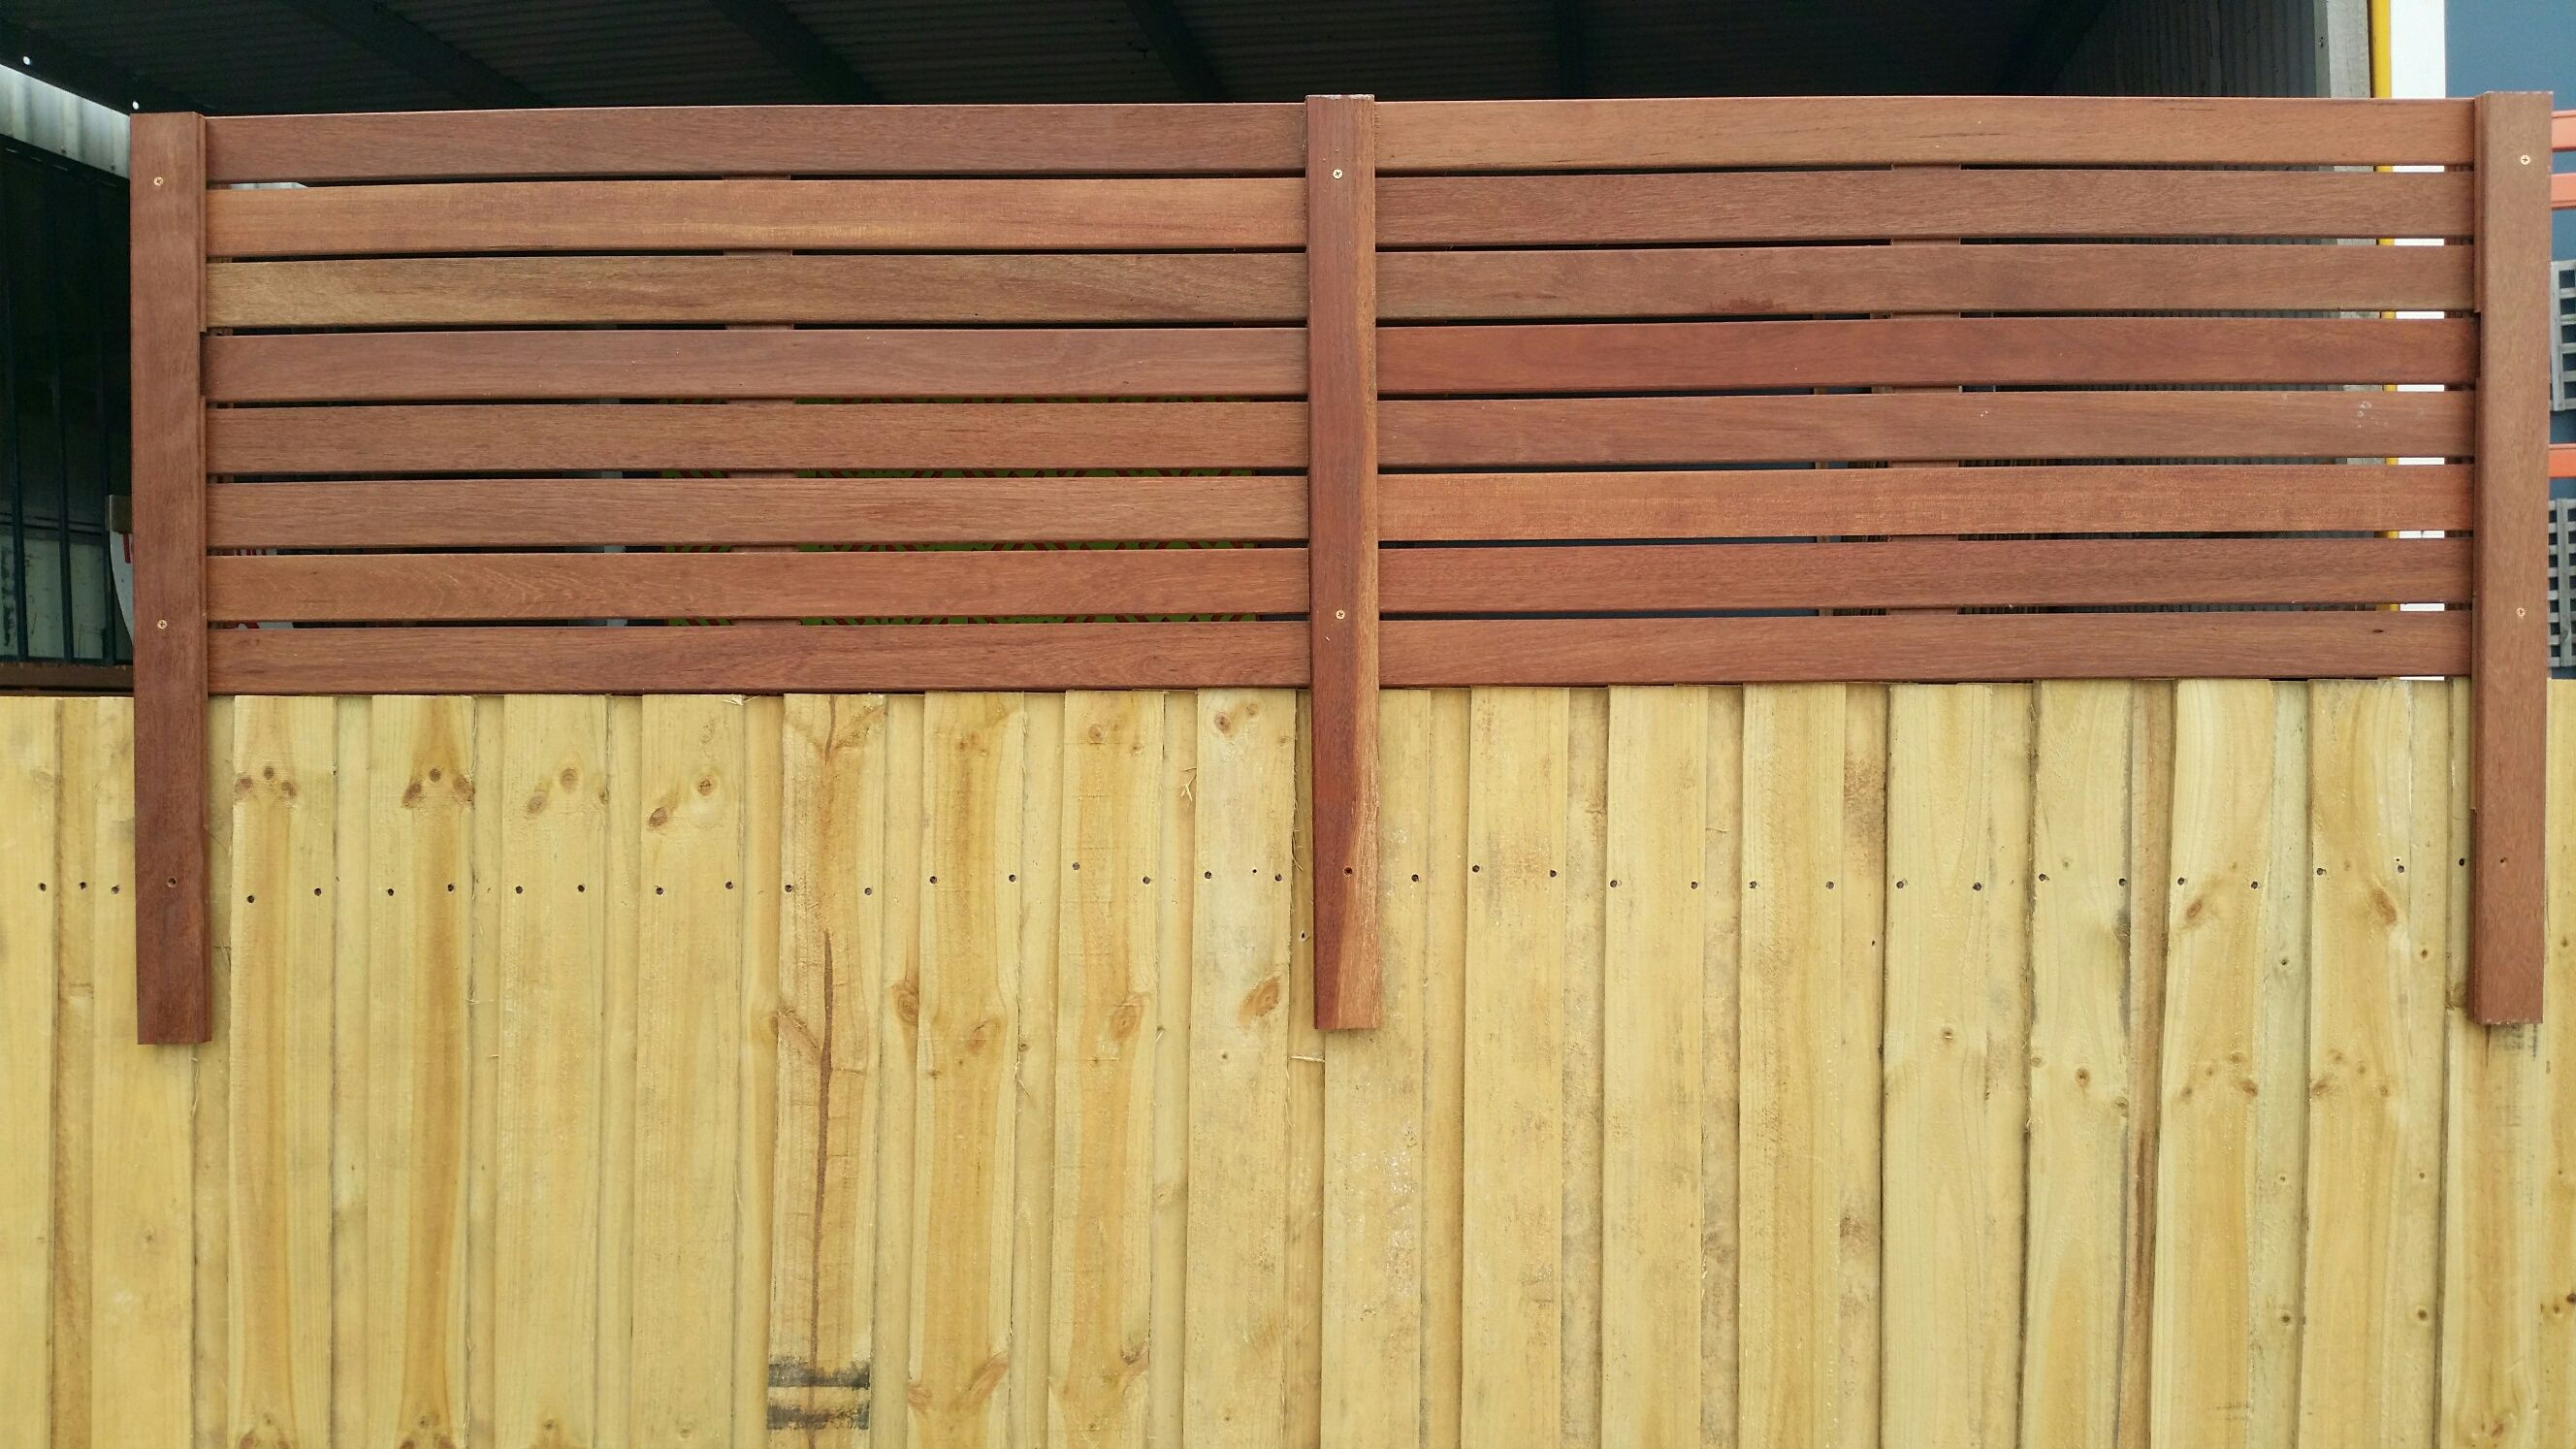 Fence Extensions Backyard Fences Fence Design Lattice Fence